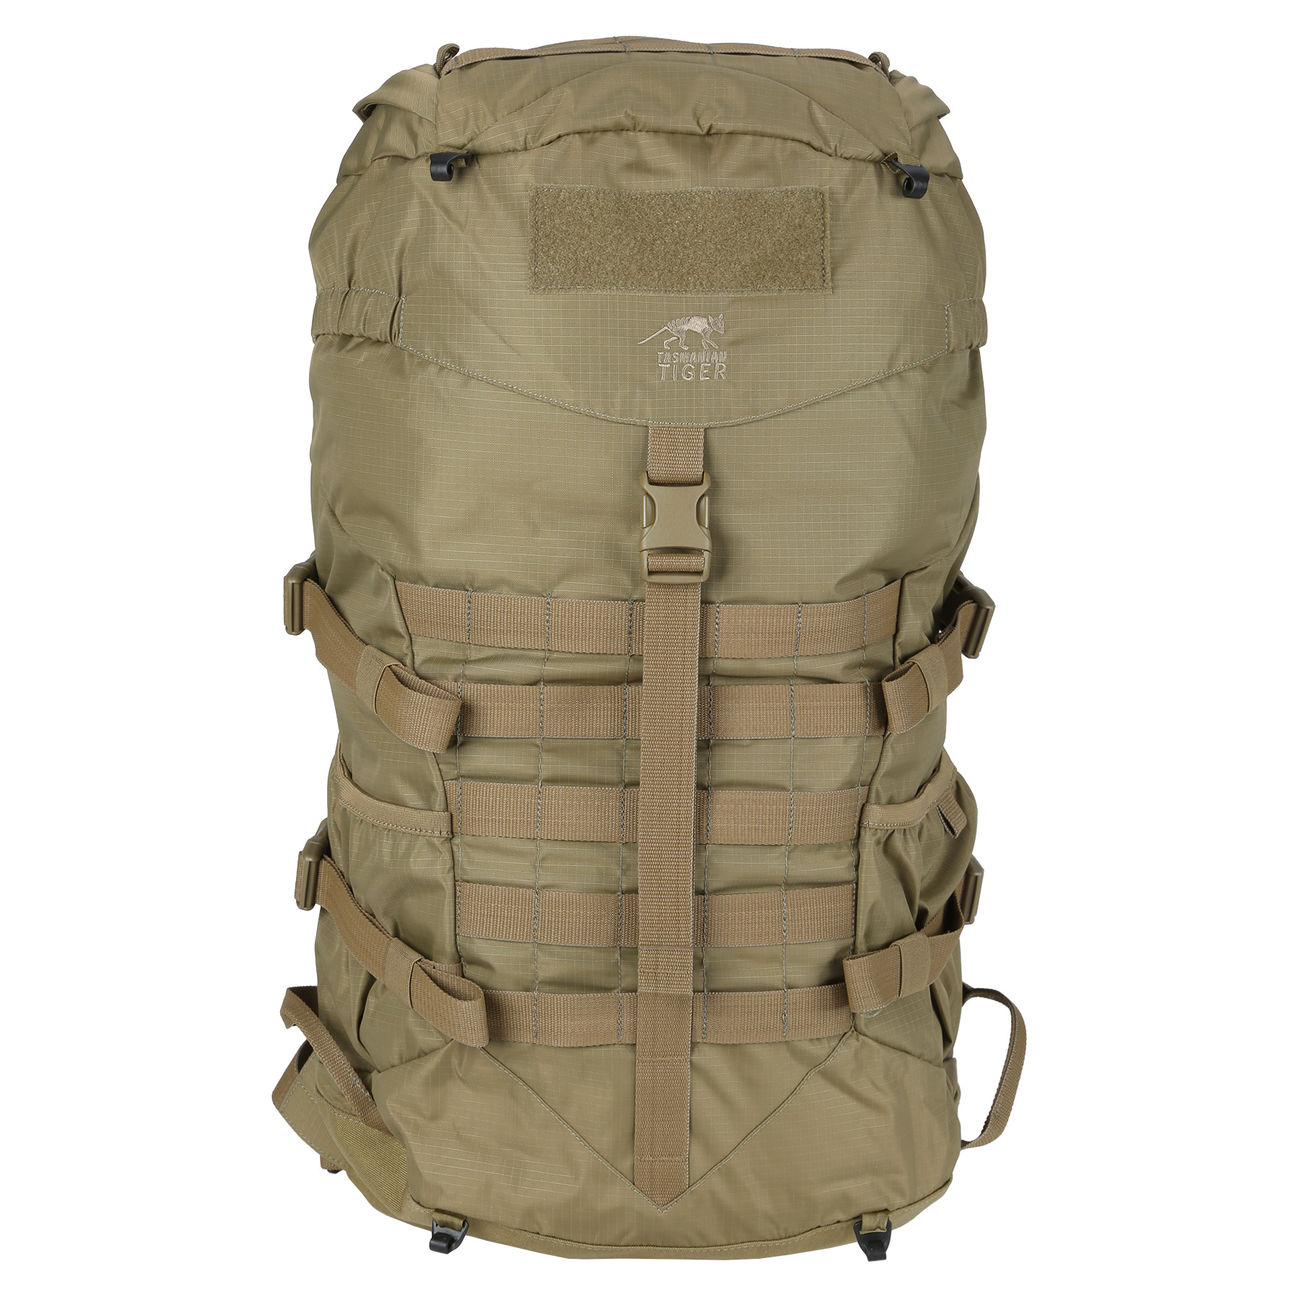 7742349dc91dd Tasmanian Tiger Rucksack TT Trooper Light Pack 35 Liter khaki